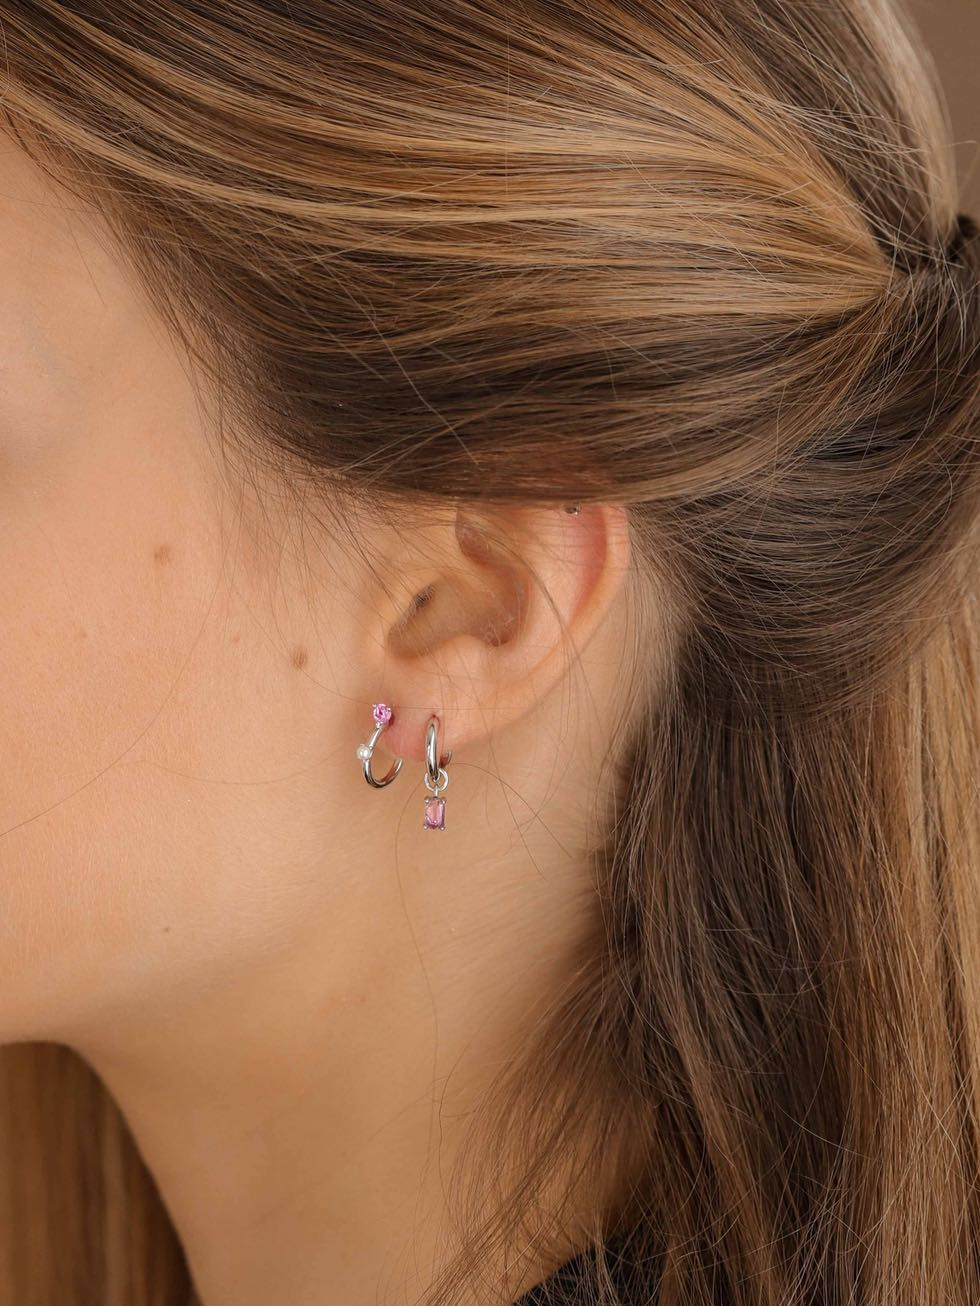 Pink LILY silver hoops earrings